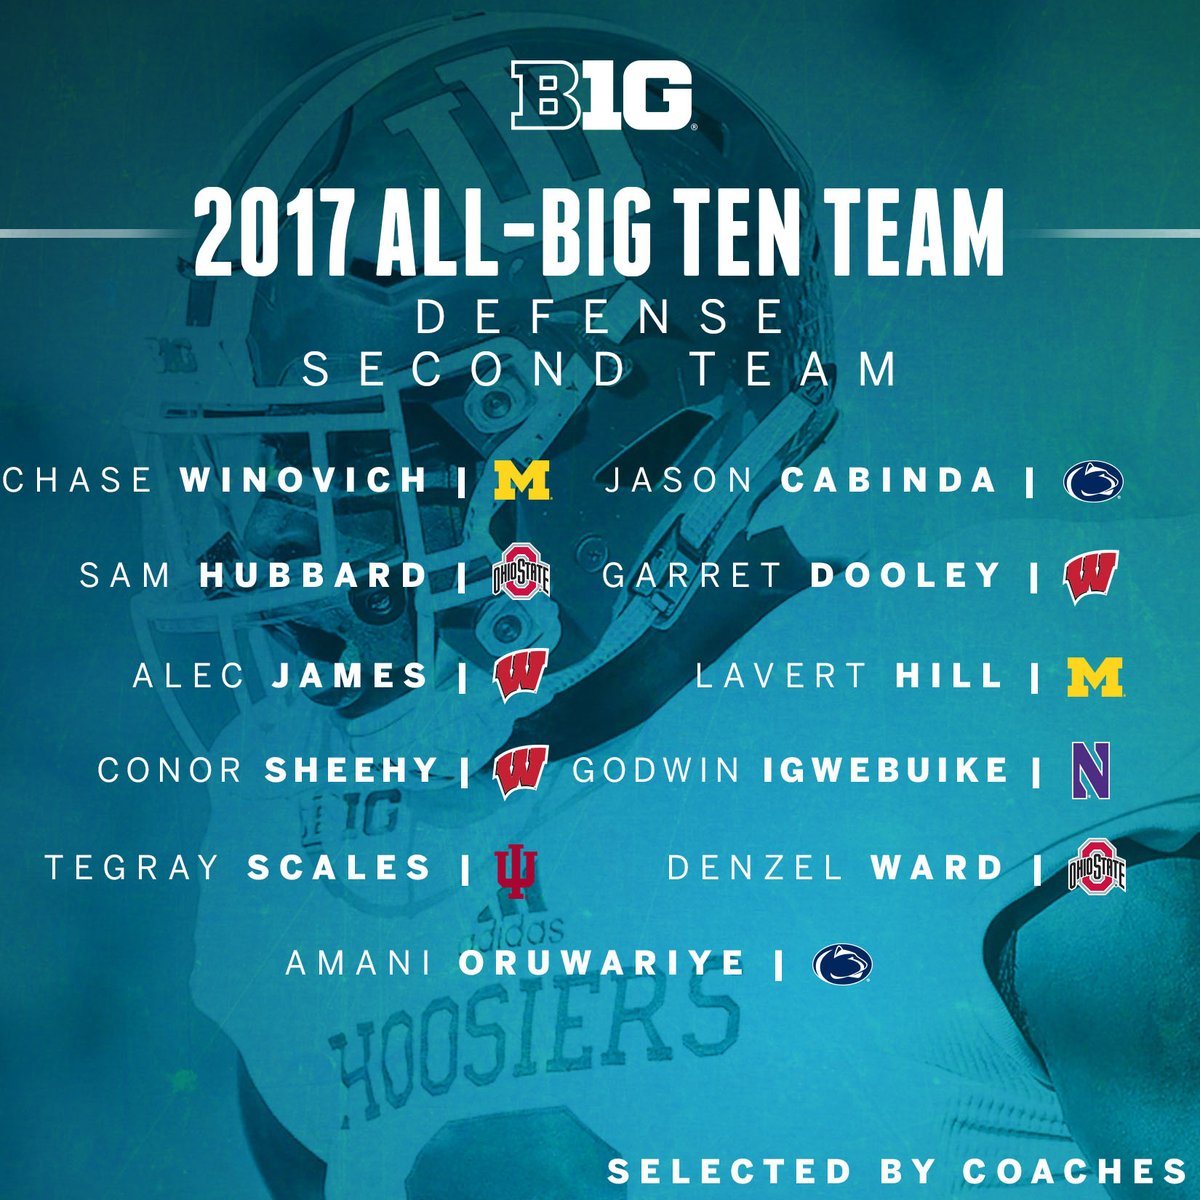 All-Big Ten Defense Second Team, as selected by coaches